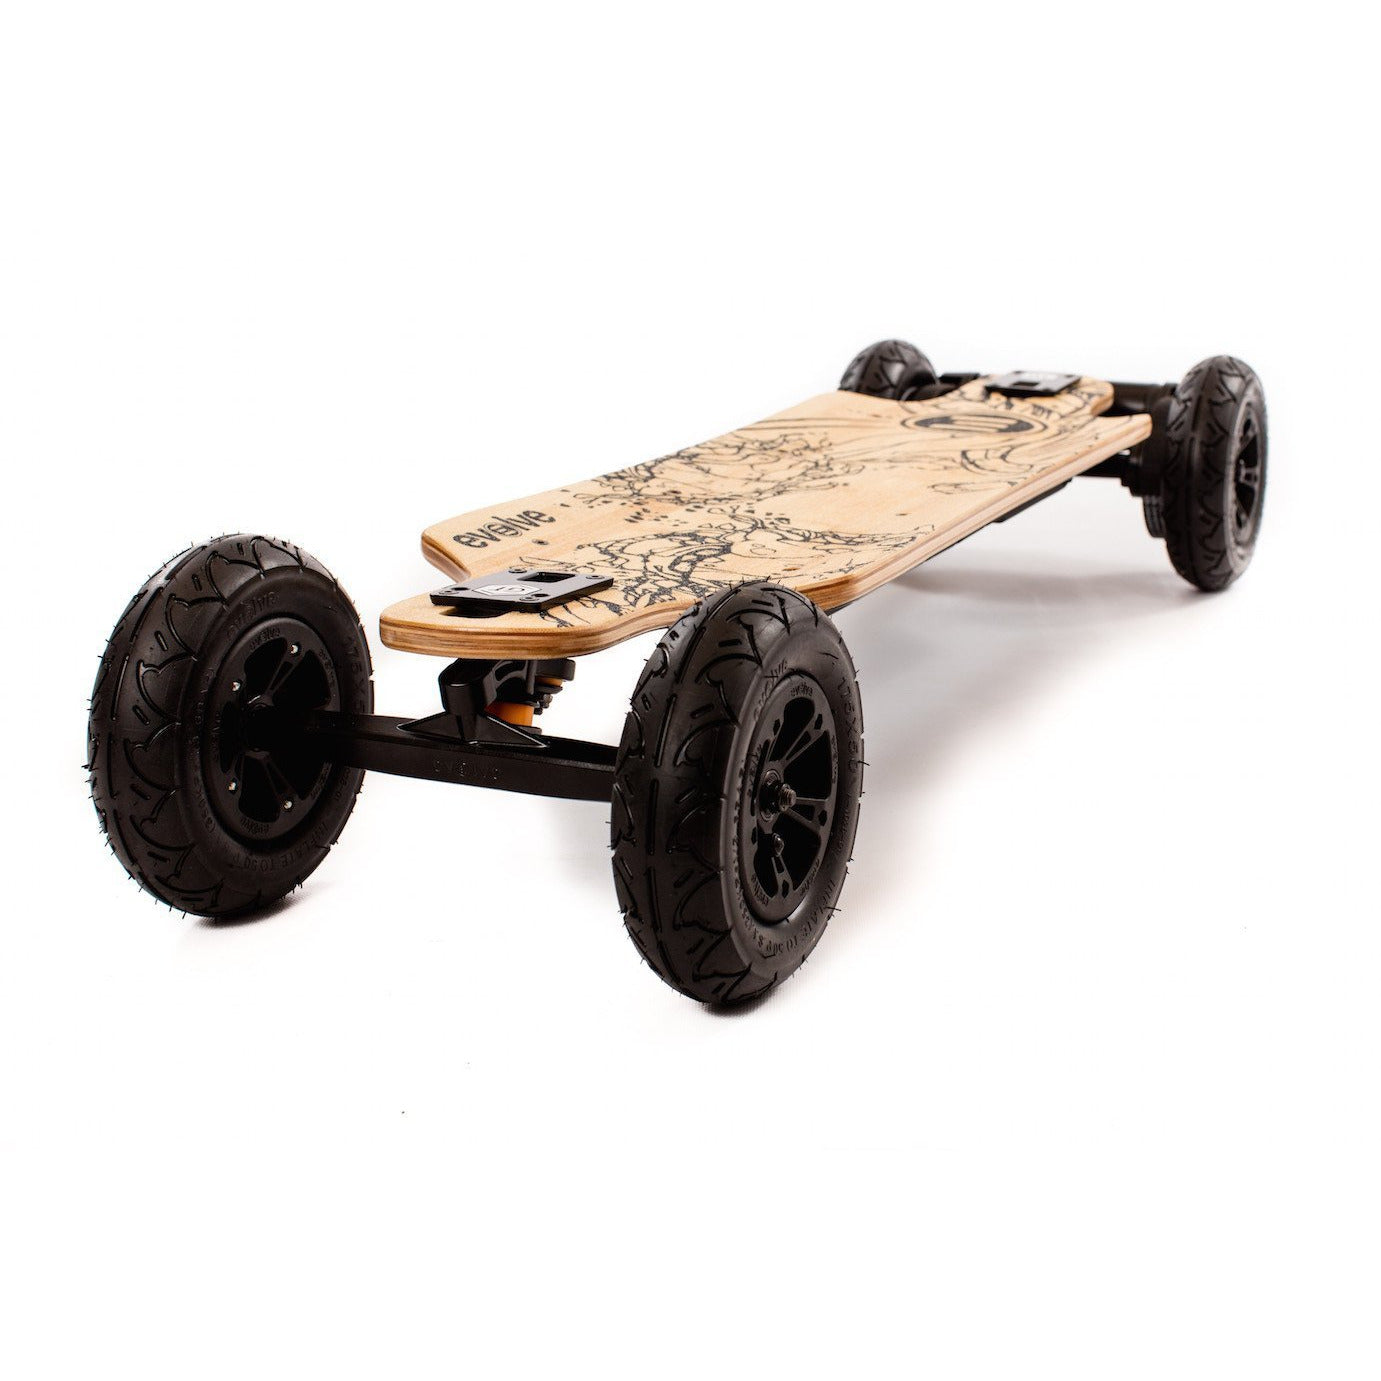 Evolve GT Bamboo All-Terrain Electric Skateboard